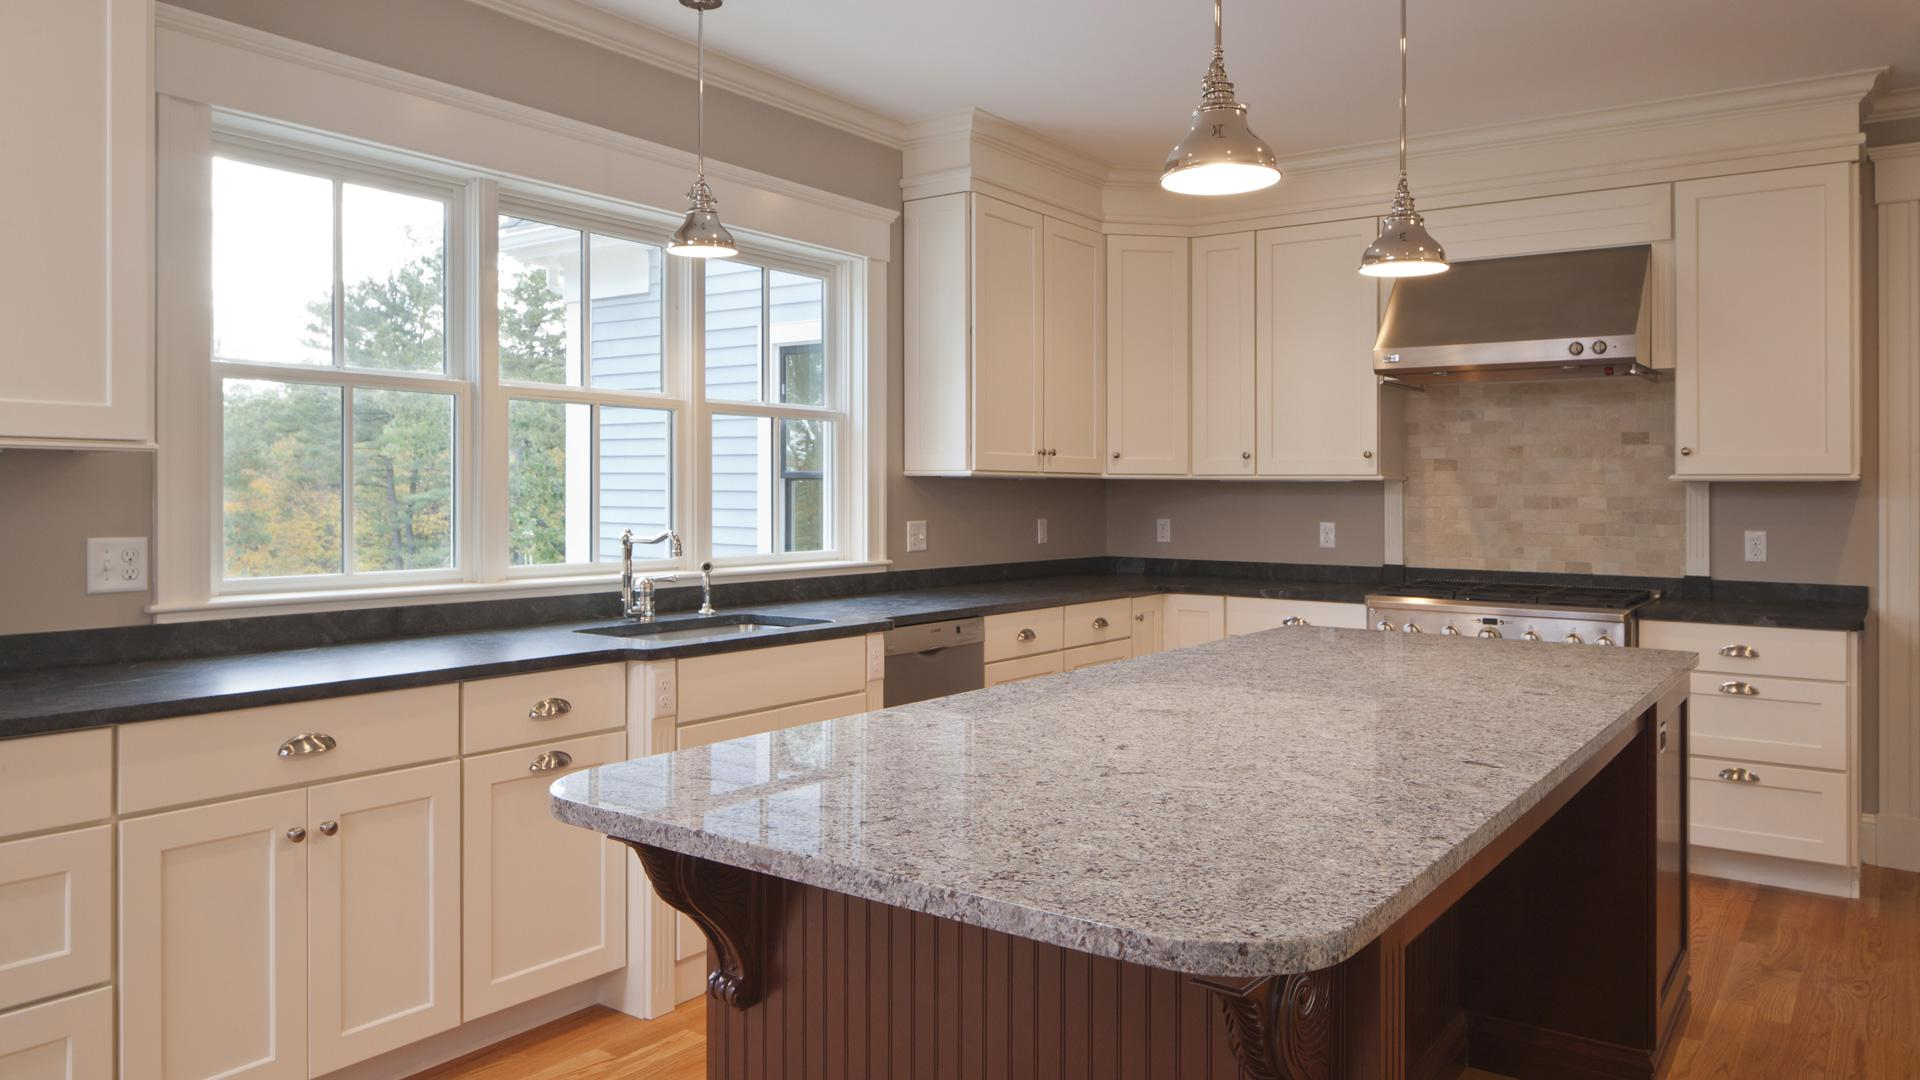 Kitchen Countertop Cabinets Photos Proof Your Kitchen Countertops Don T Have To Match Sheknows